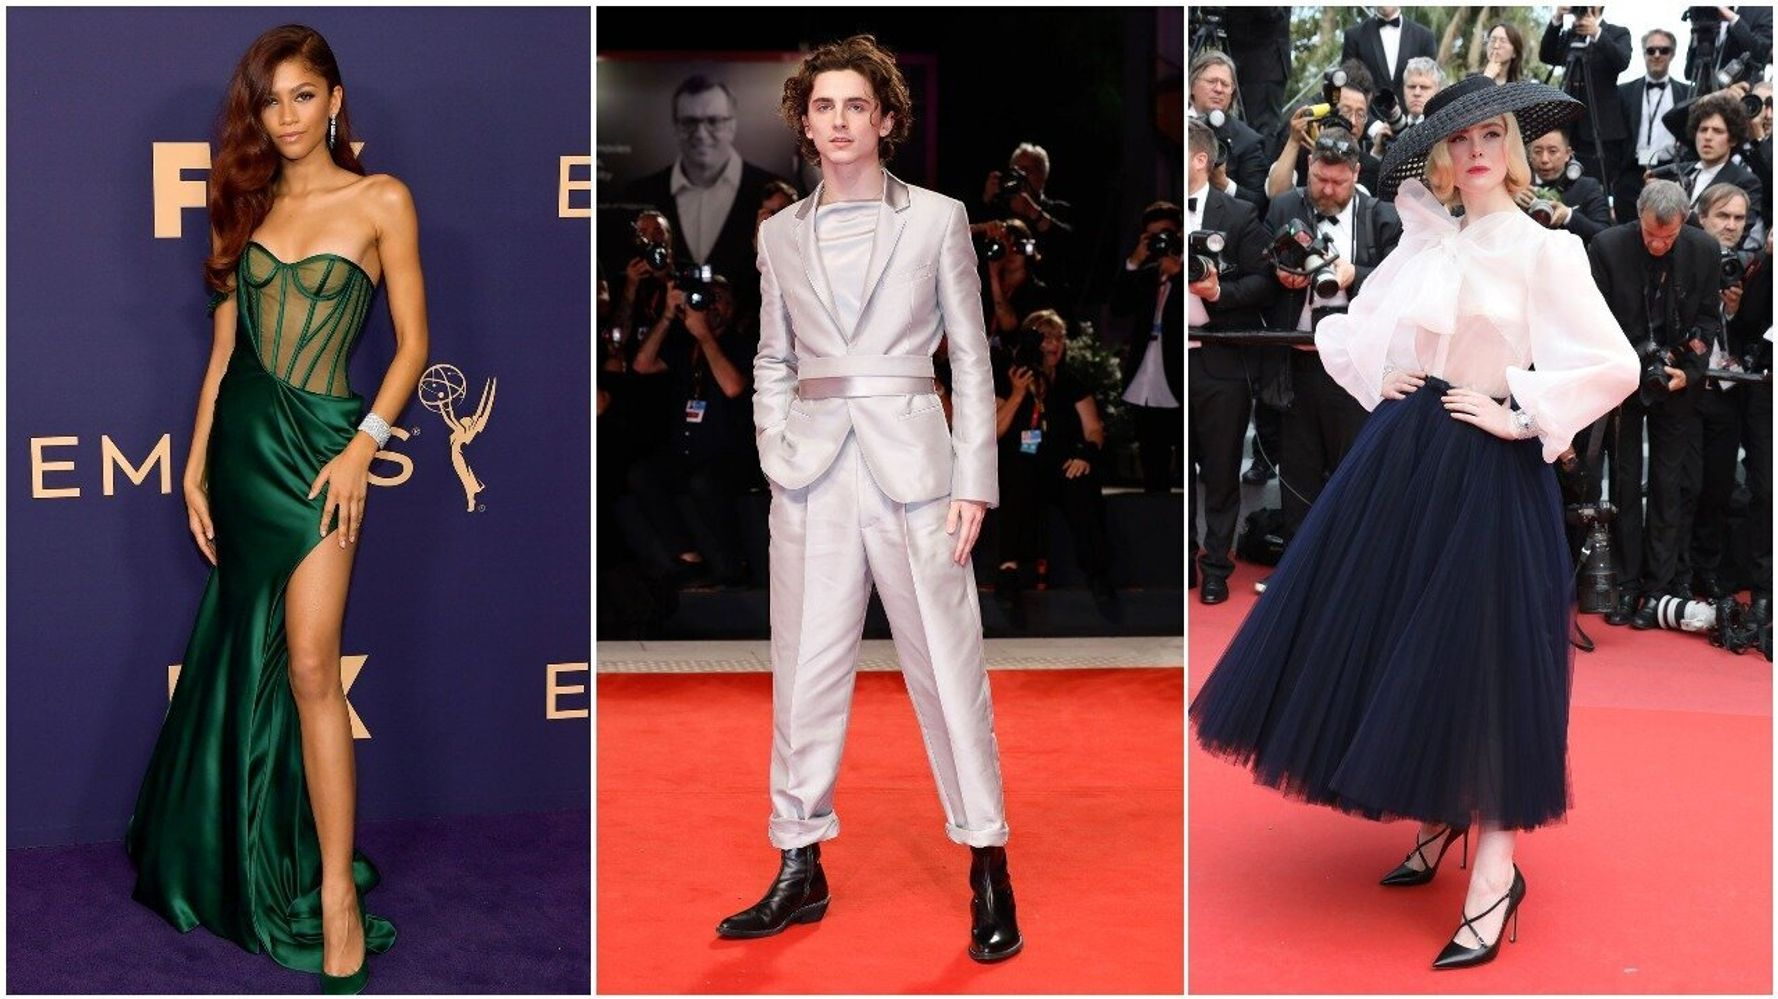 A Comprehensive Look Back At The Best Red Carpet Looks Of 2019 thumbnail